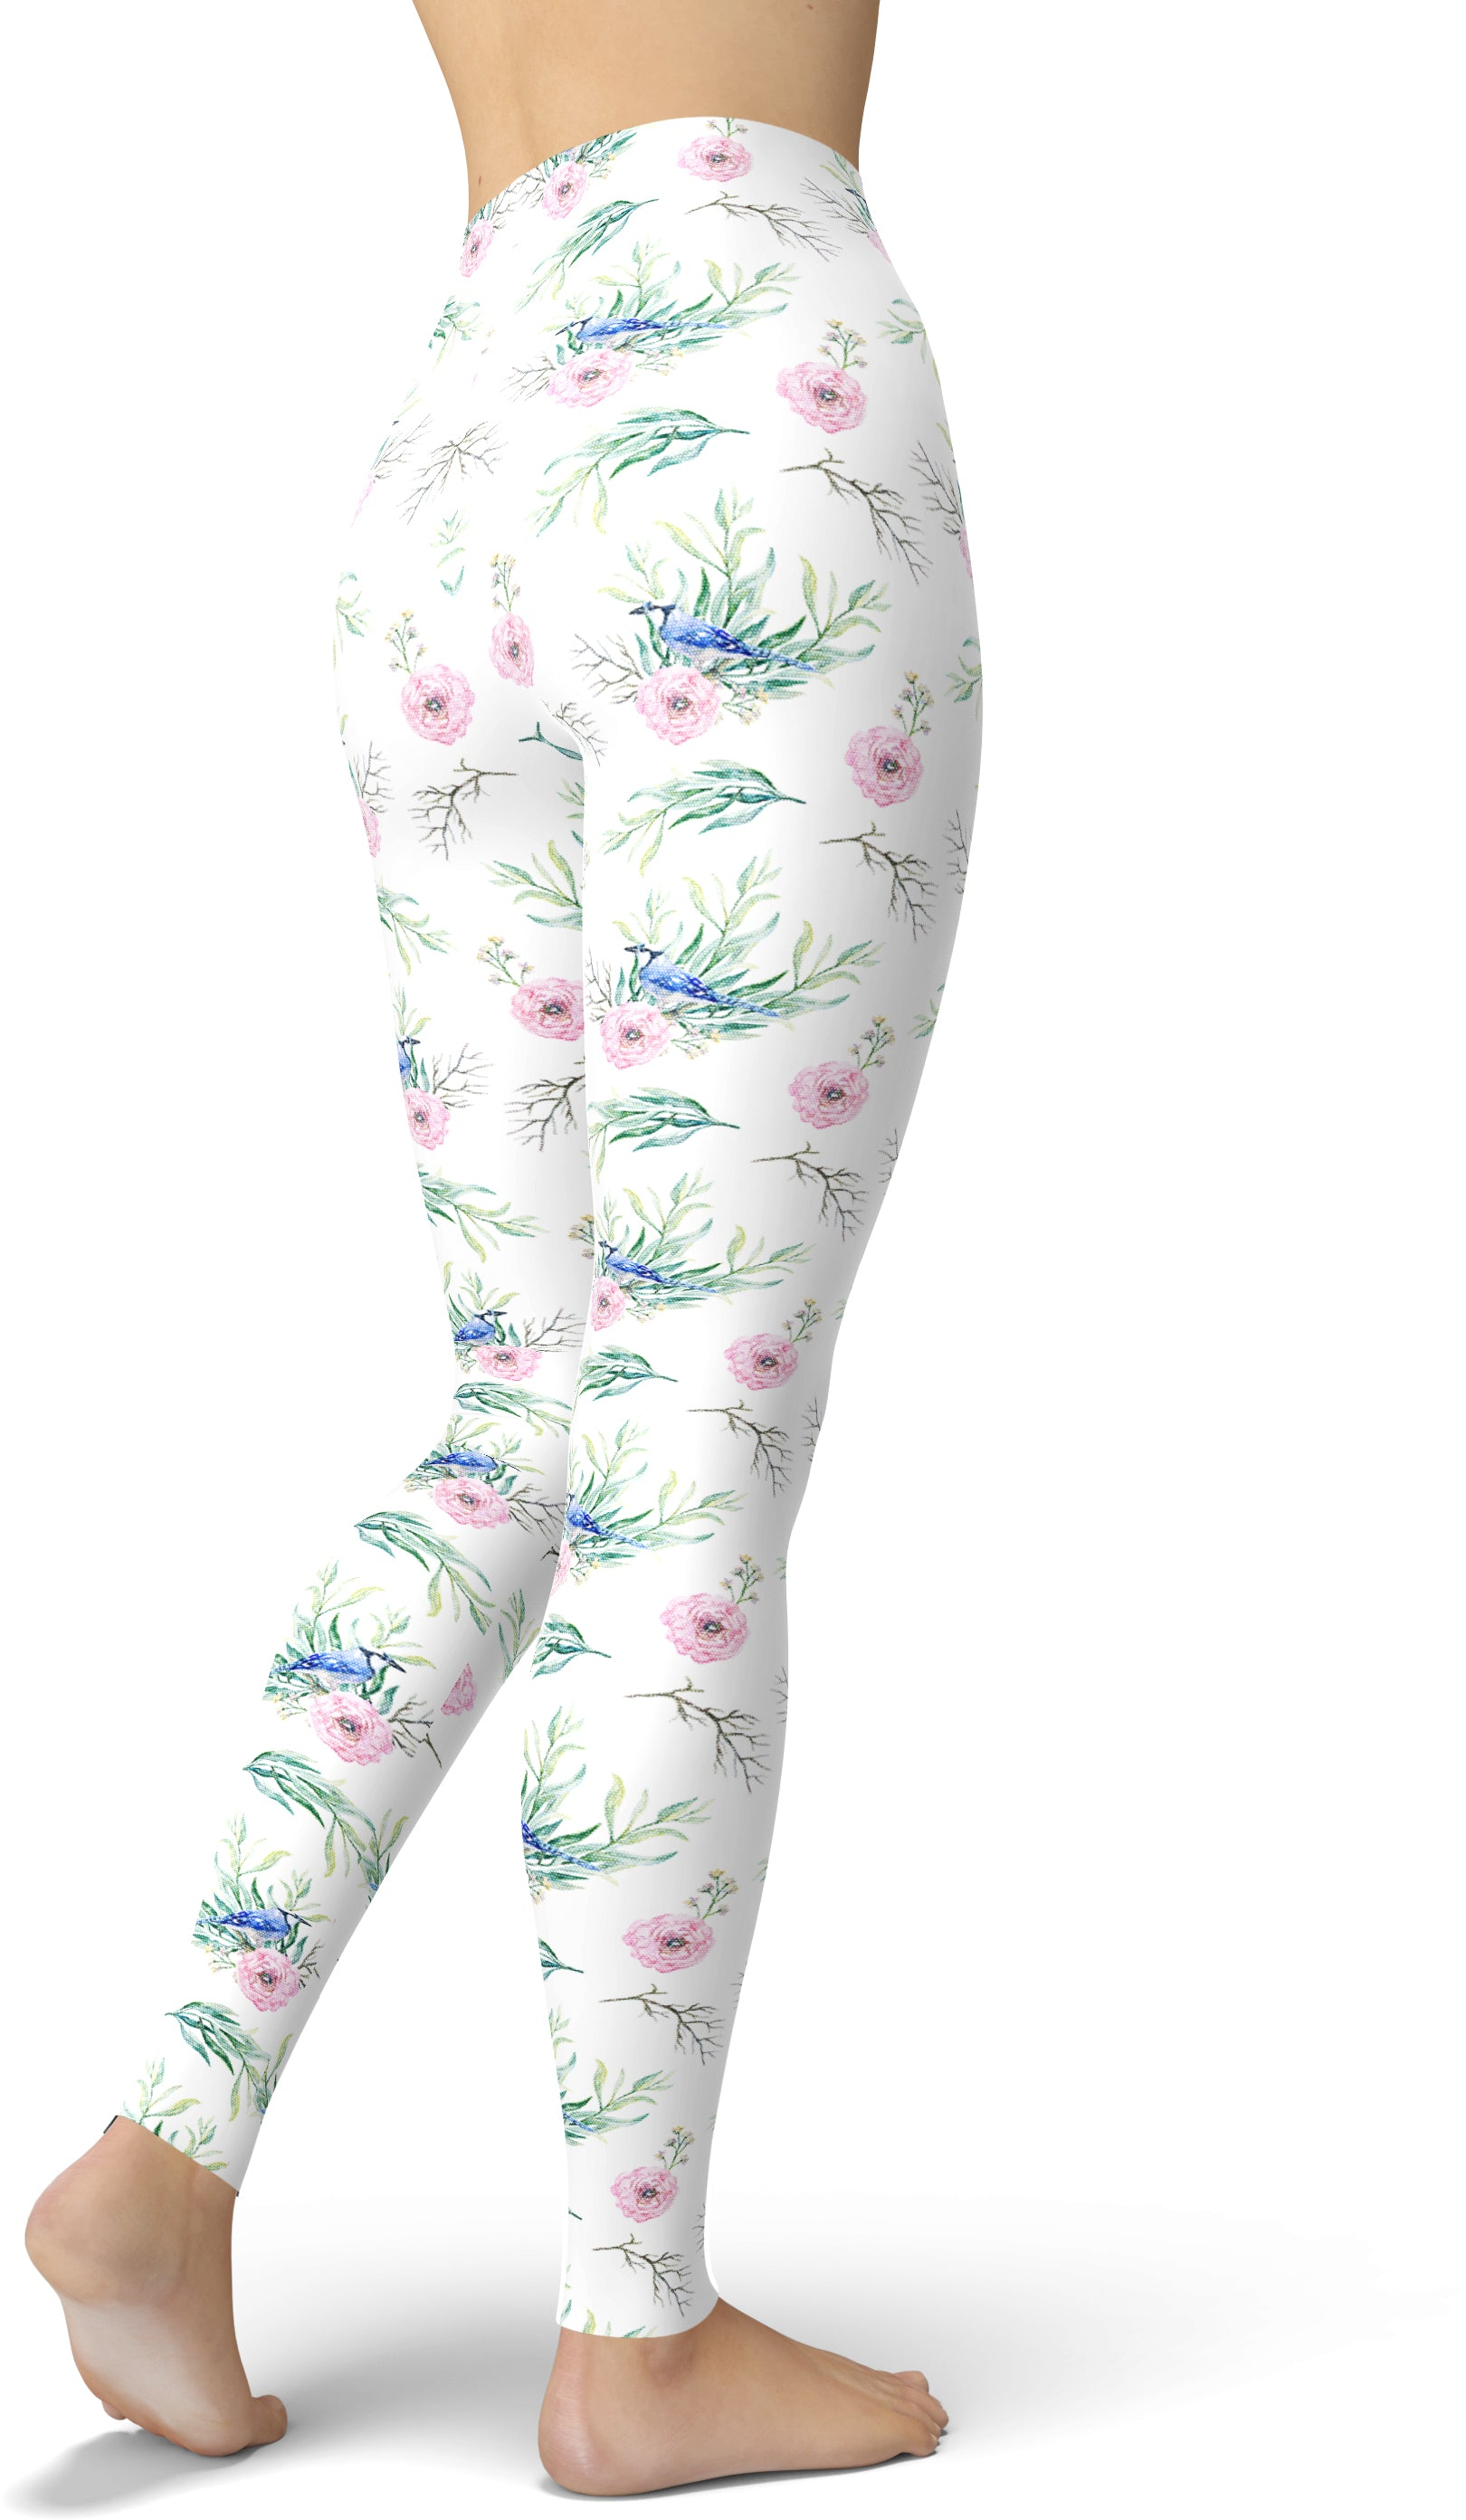 The Blue Bird Leggings